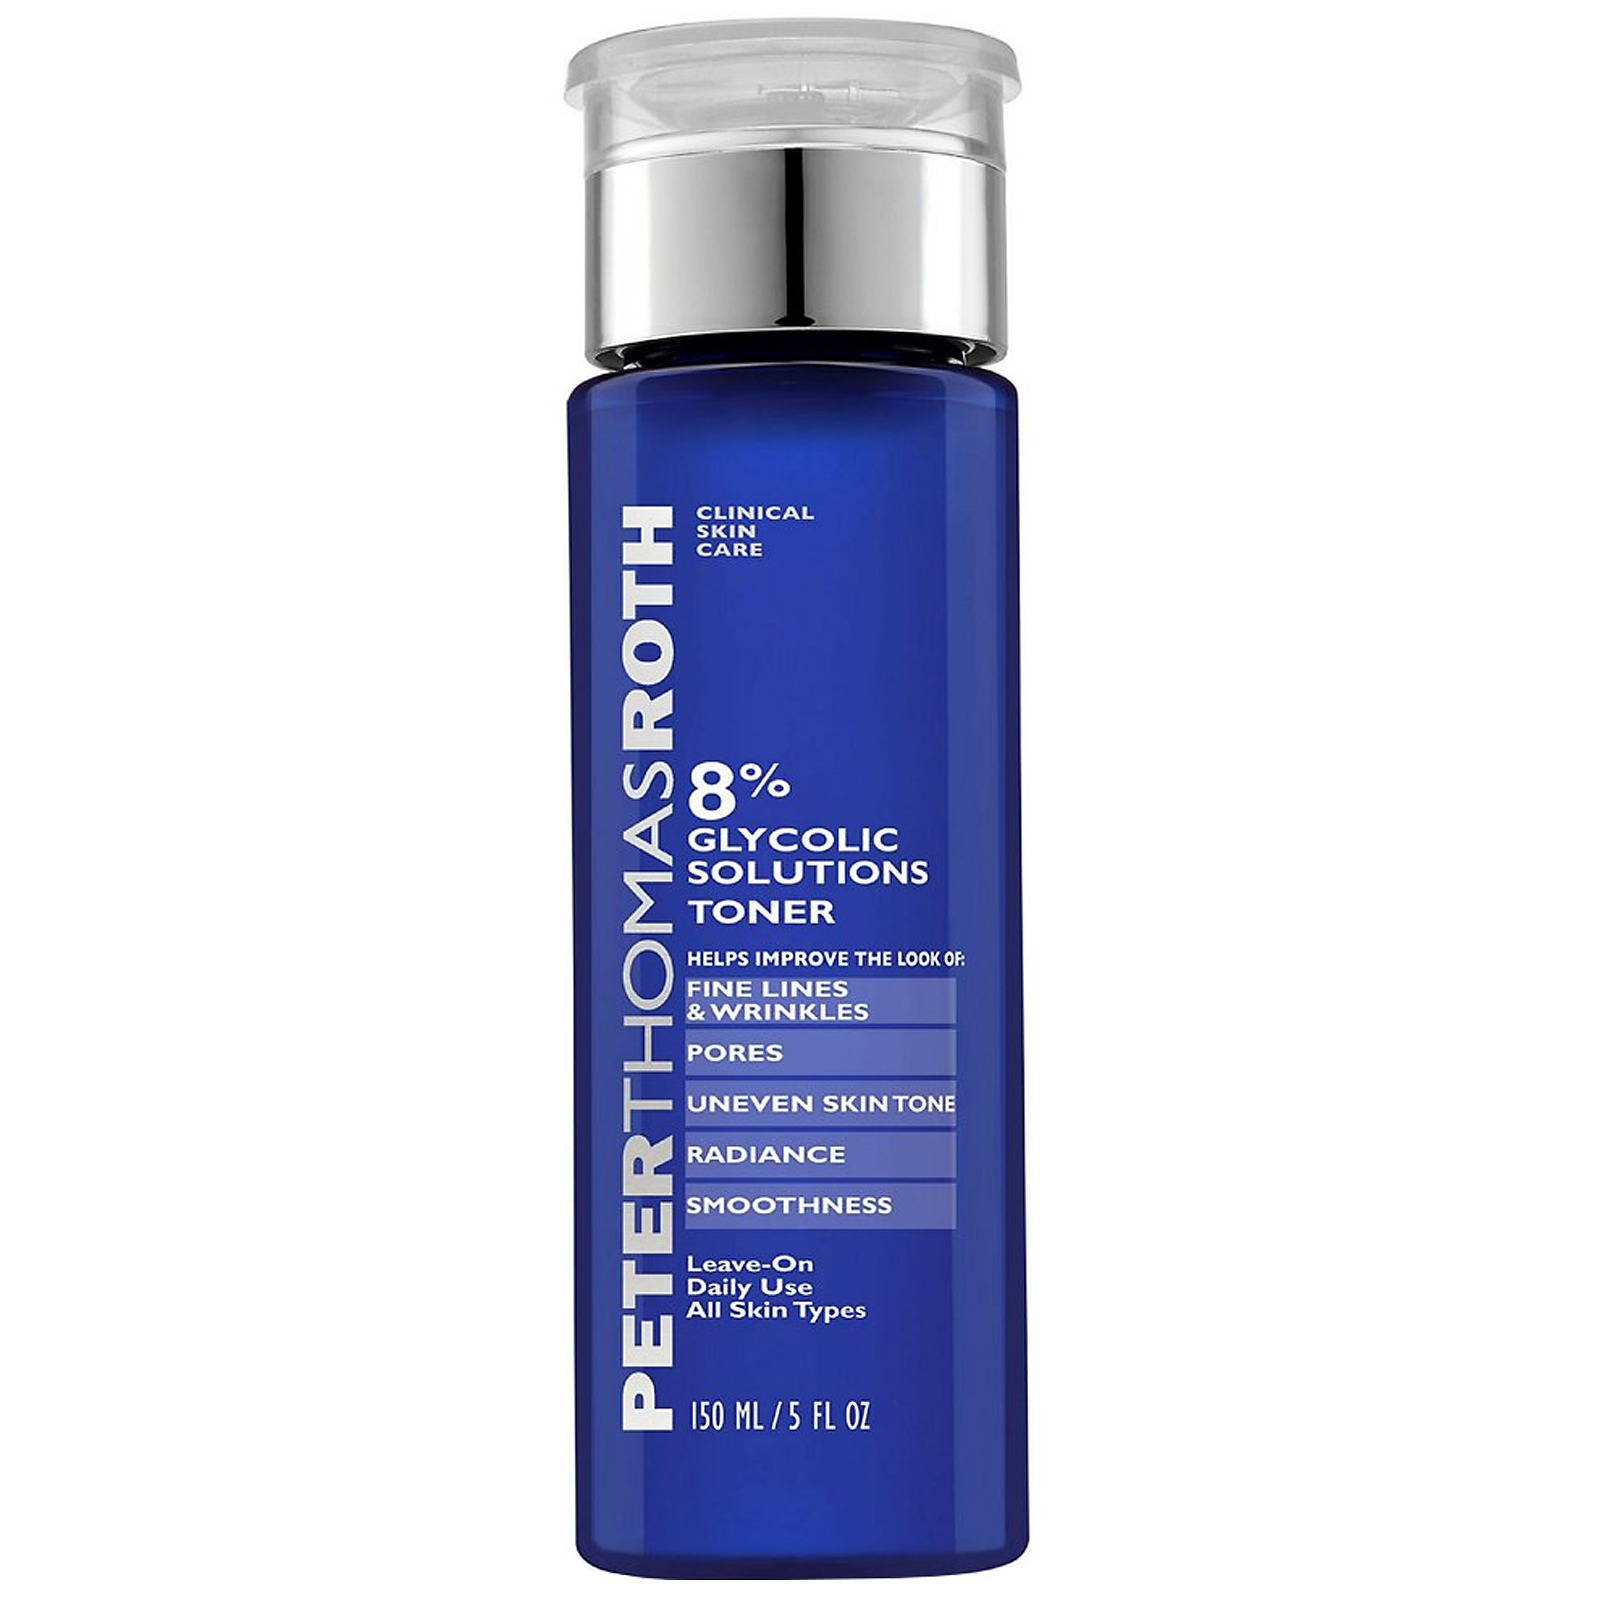 Peter Thomas Roth Glycolic 8% Glycolic Solutions Toner 150ml